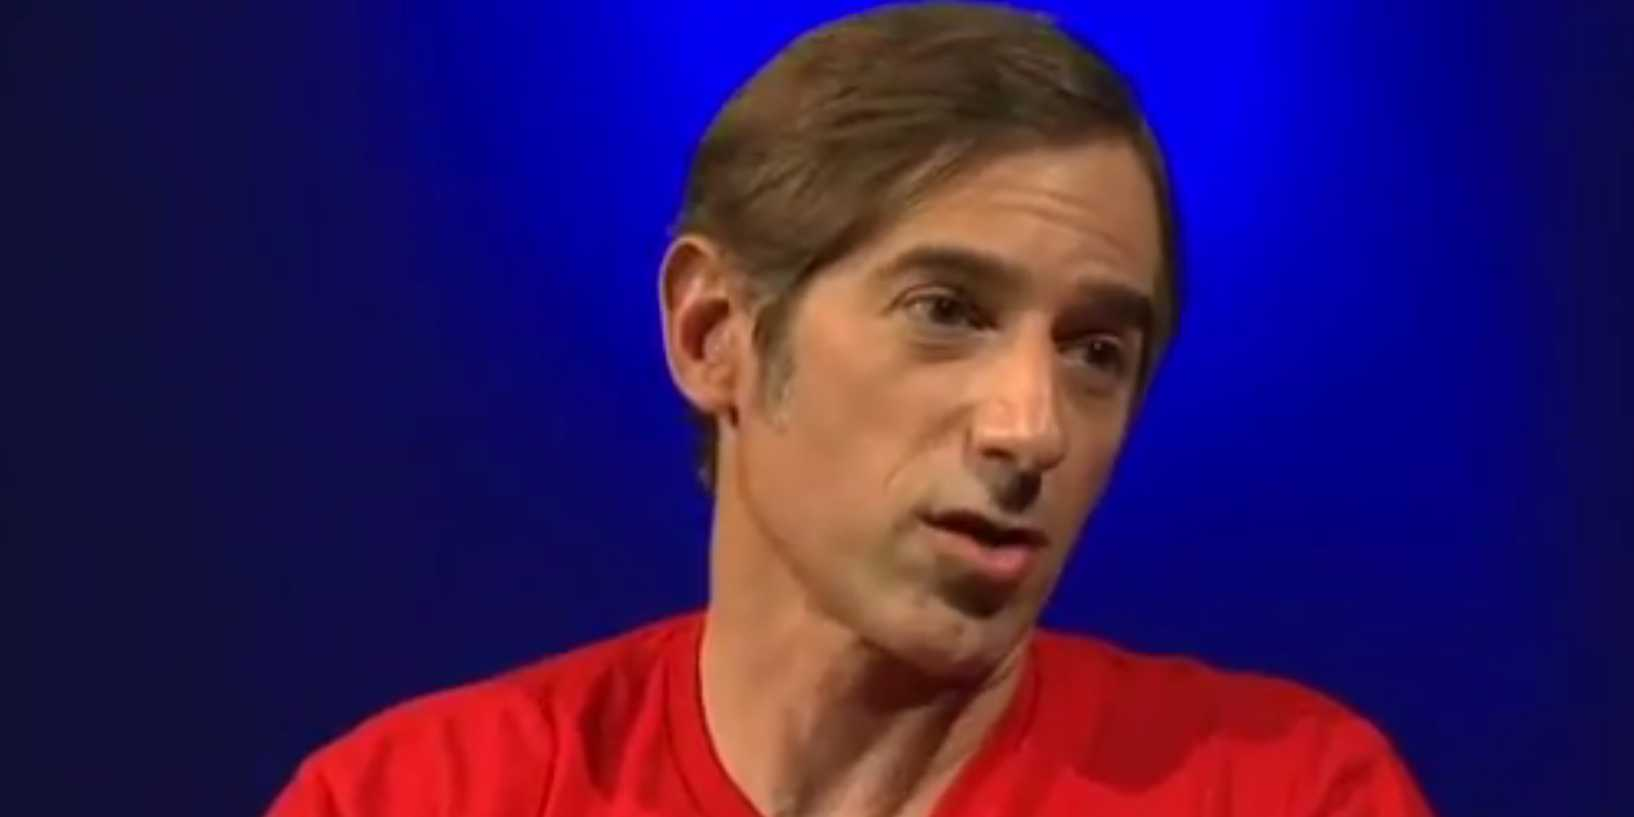 zynga-ceo-mark-pincus-heres-why-we-just-fired-520-people